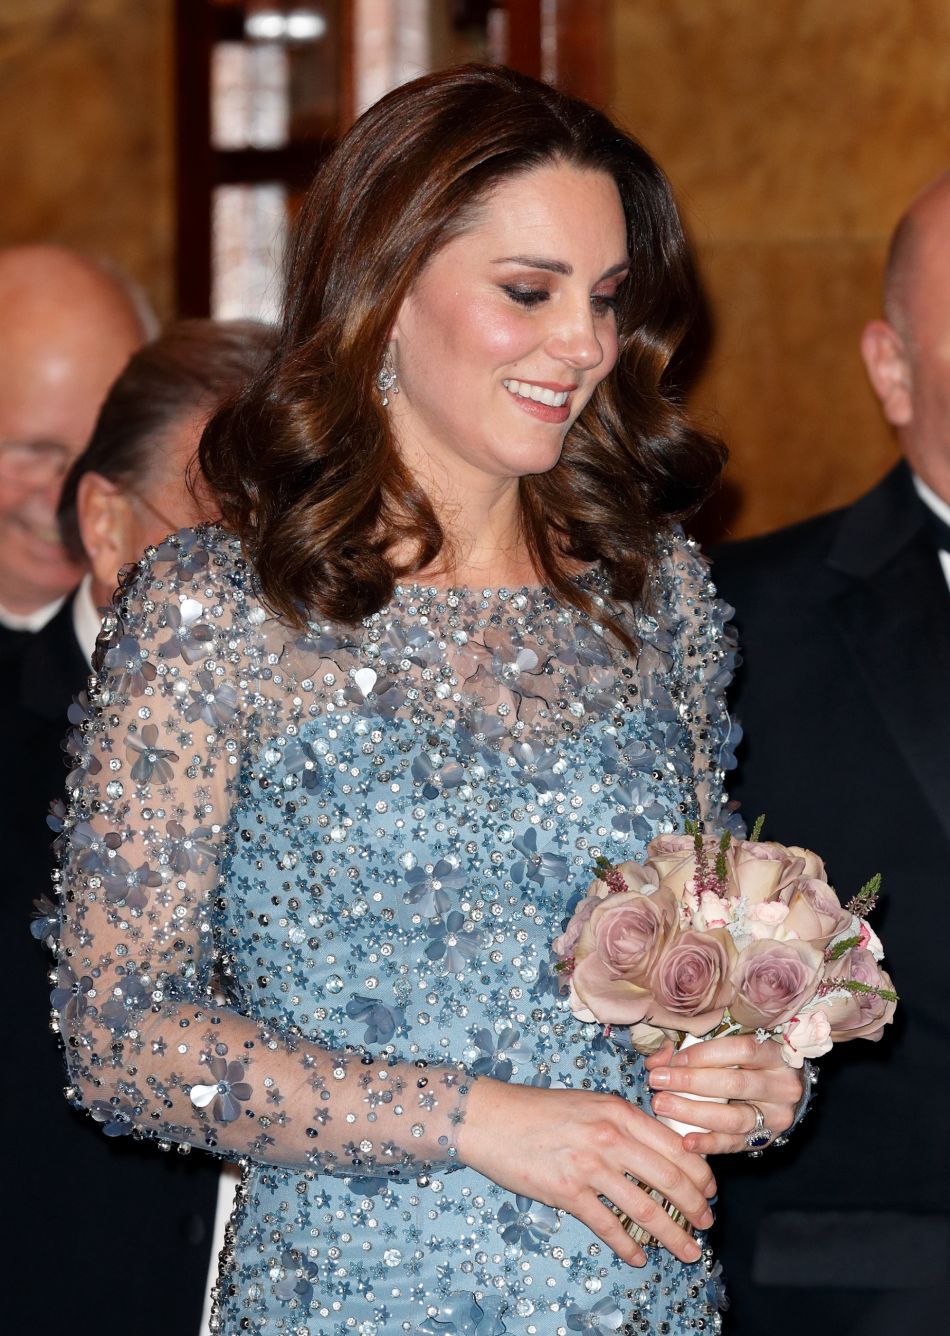 Kate Middleton dévoile son baby bump lors du Royal Variety Performance, à Londres.